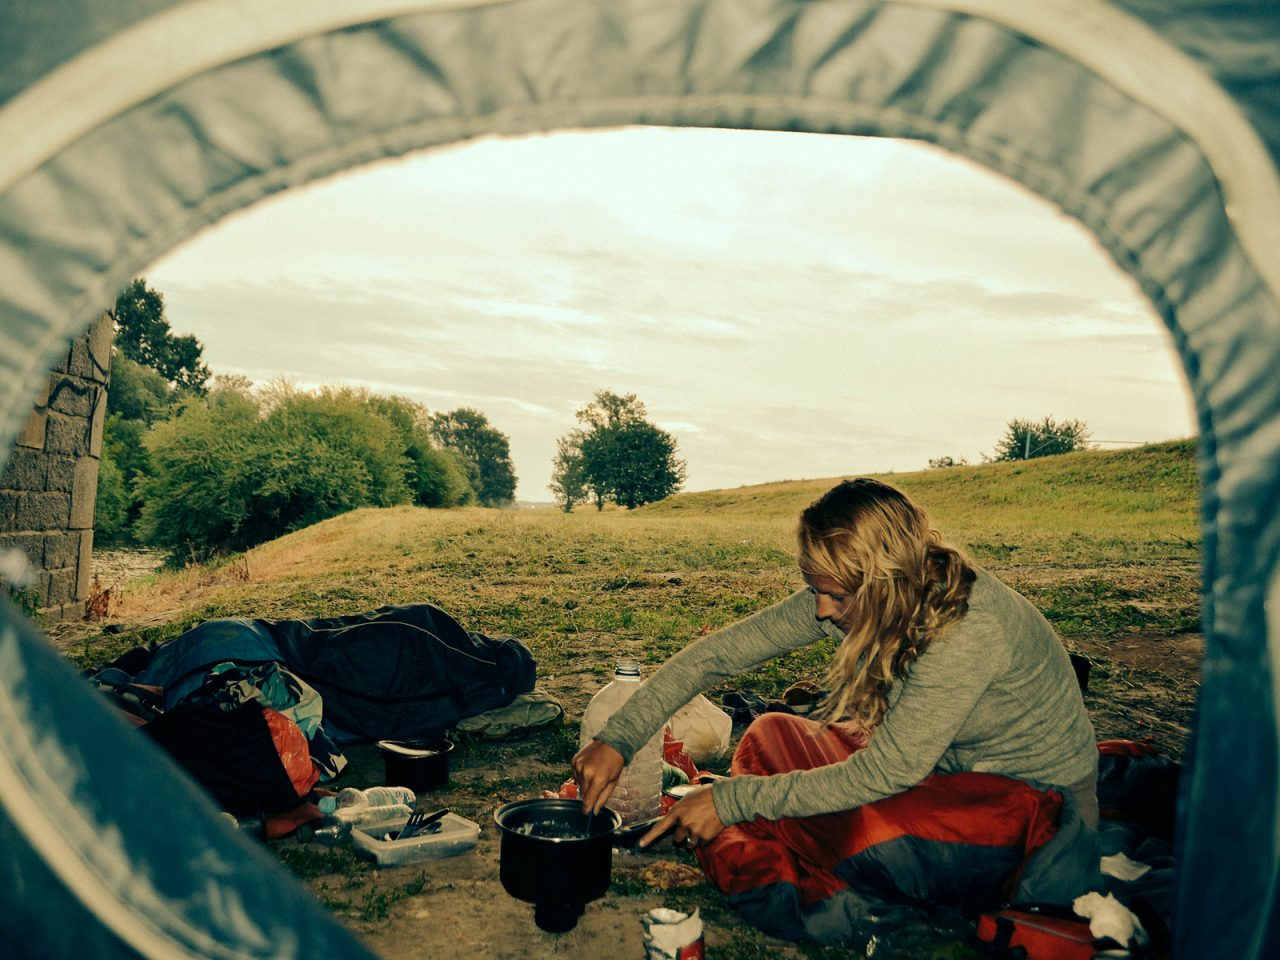 Under Another Bridge, Czech Republic - Free Camping